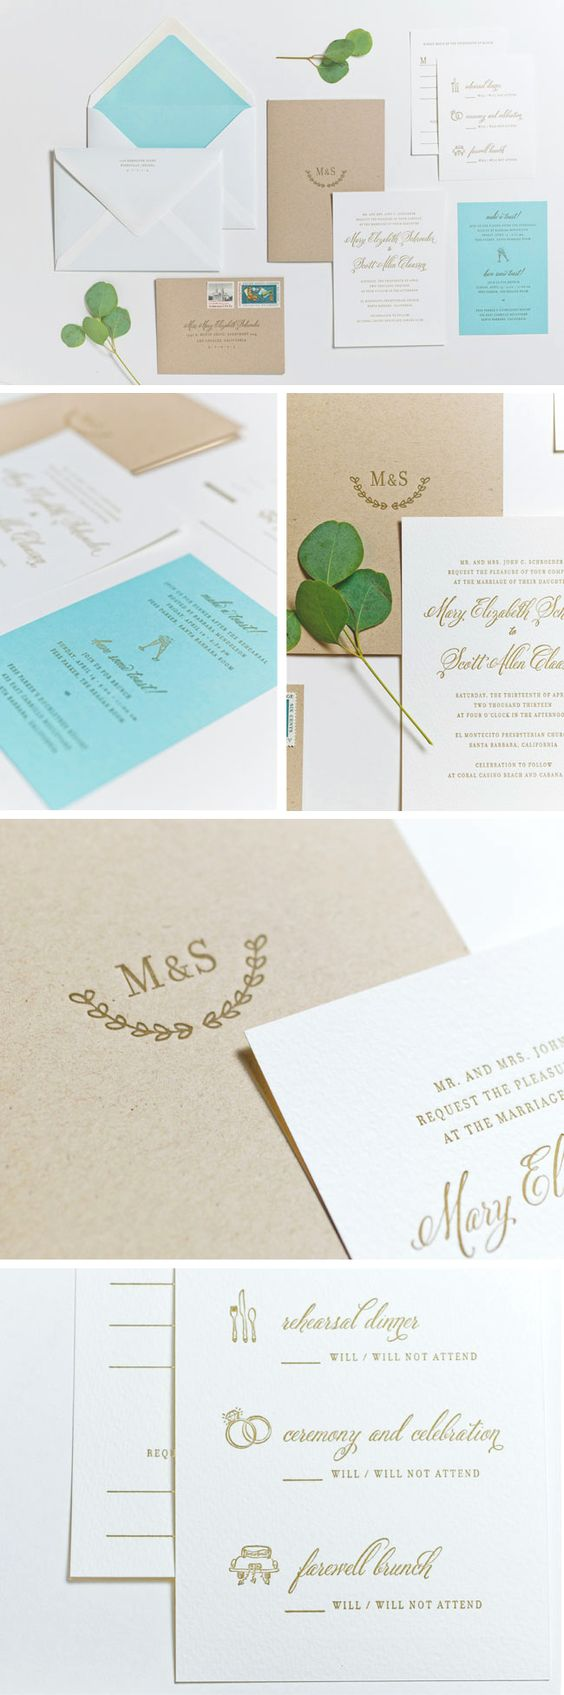 will/will not attend cards, pressed leaf, beautiful stationary